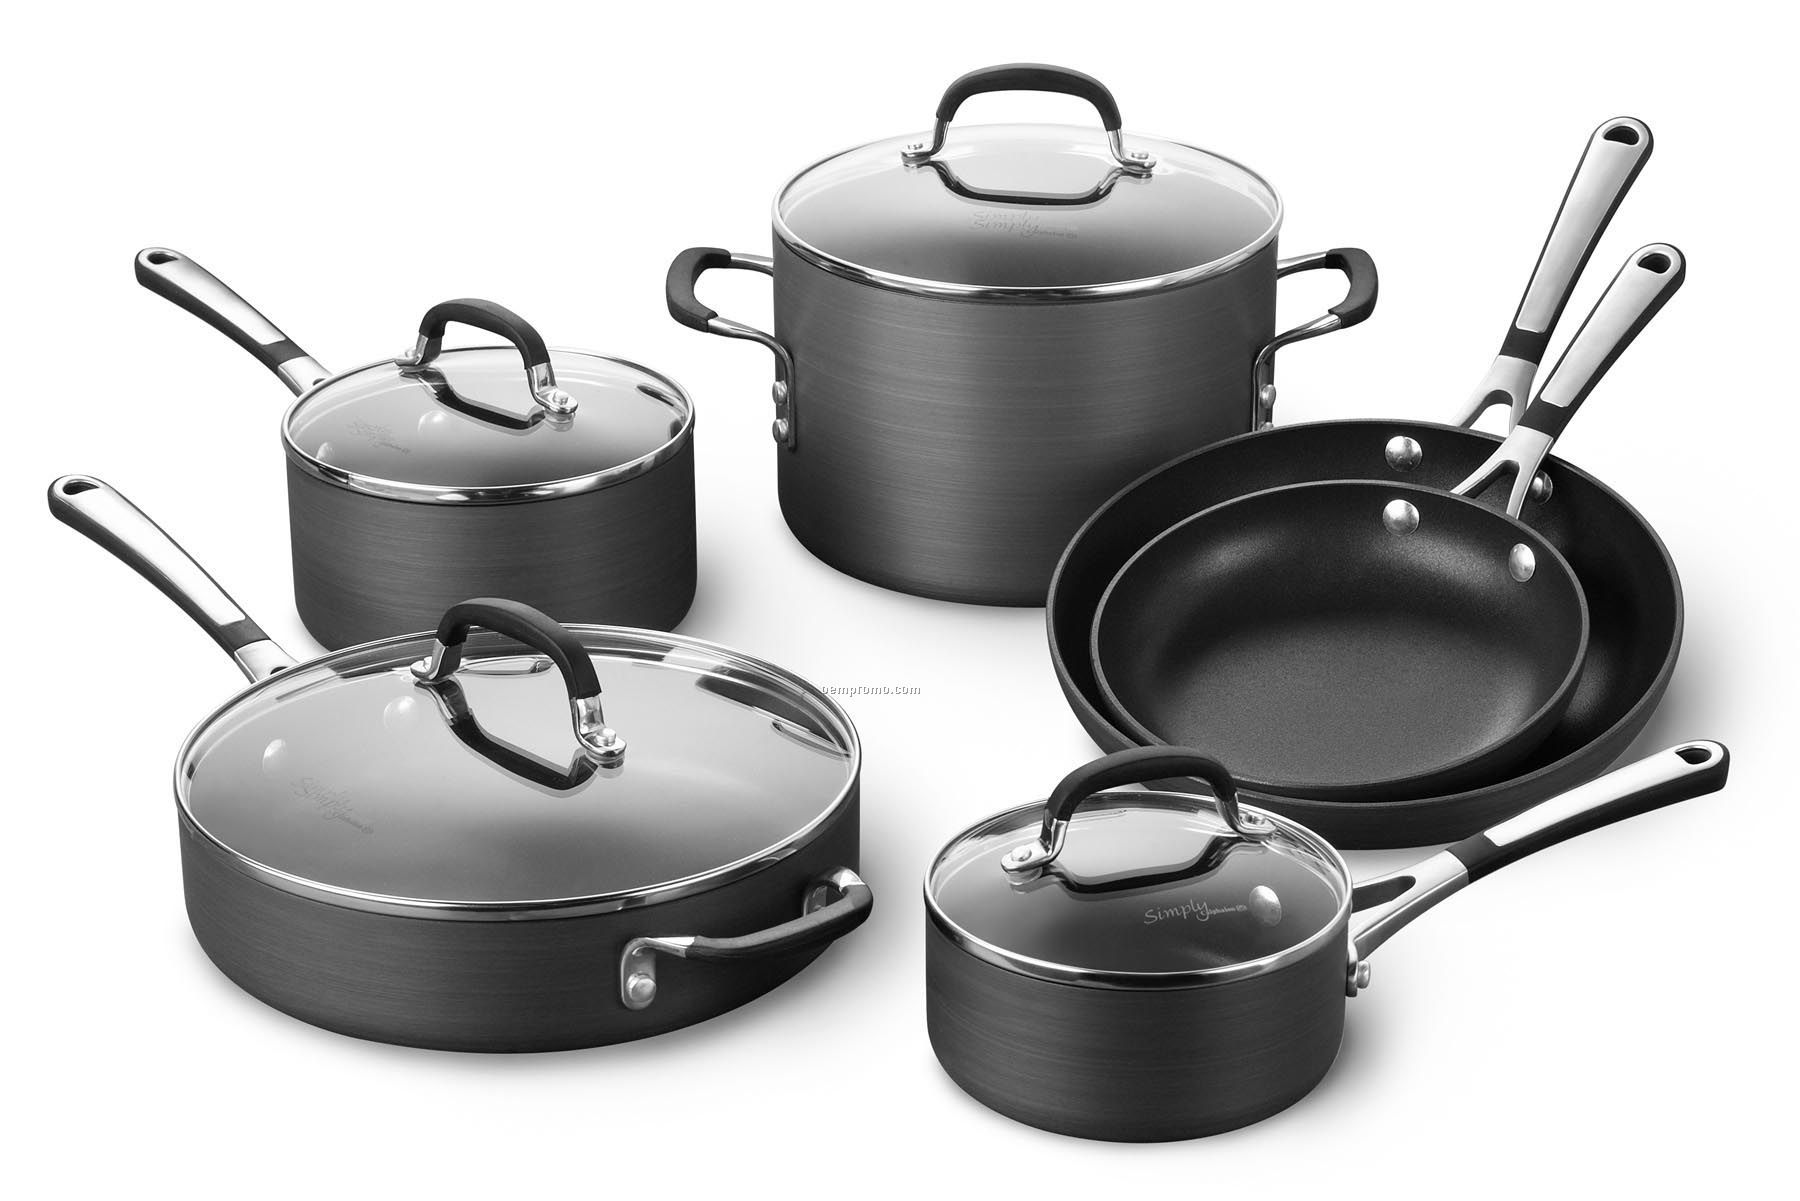 Calphalon 10 Piece Simply Calphalon Nonstick Cookware